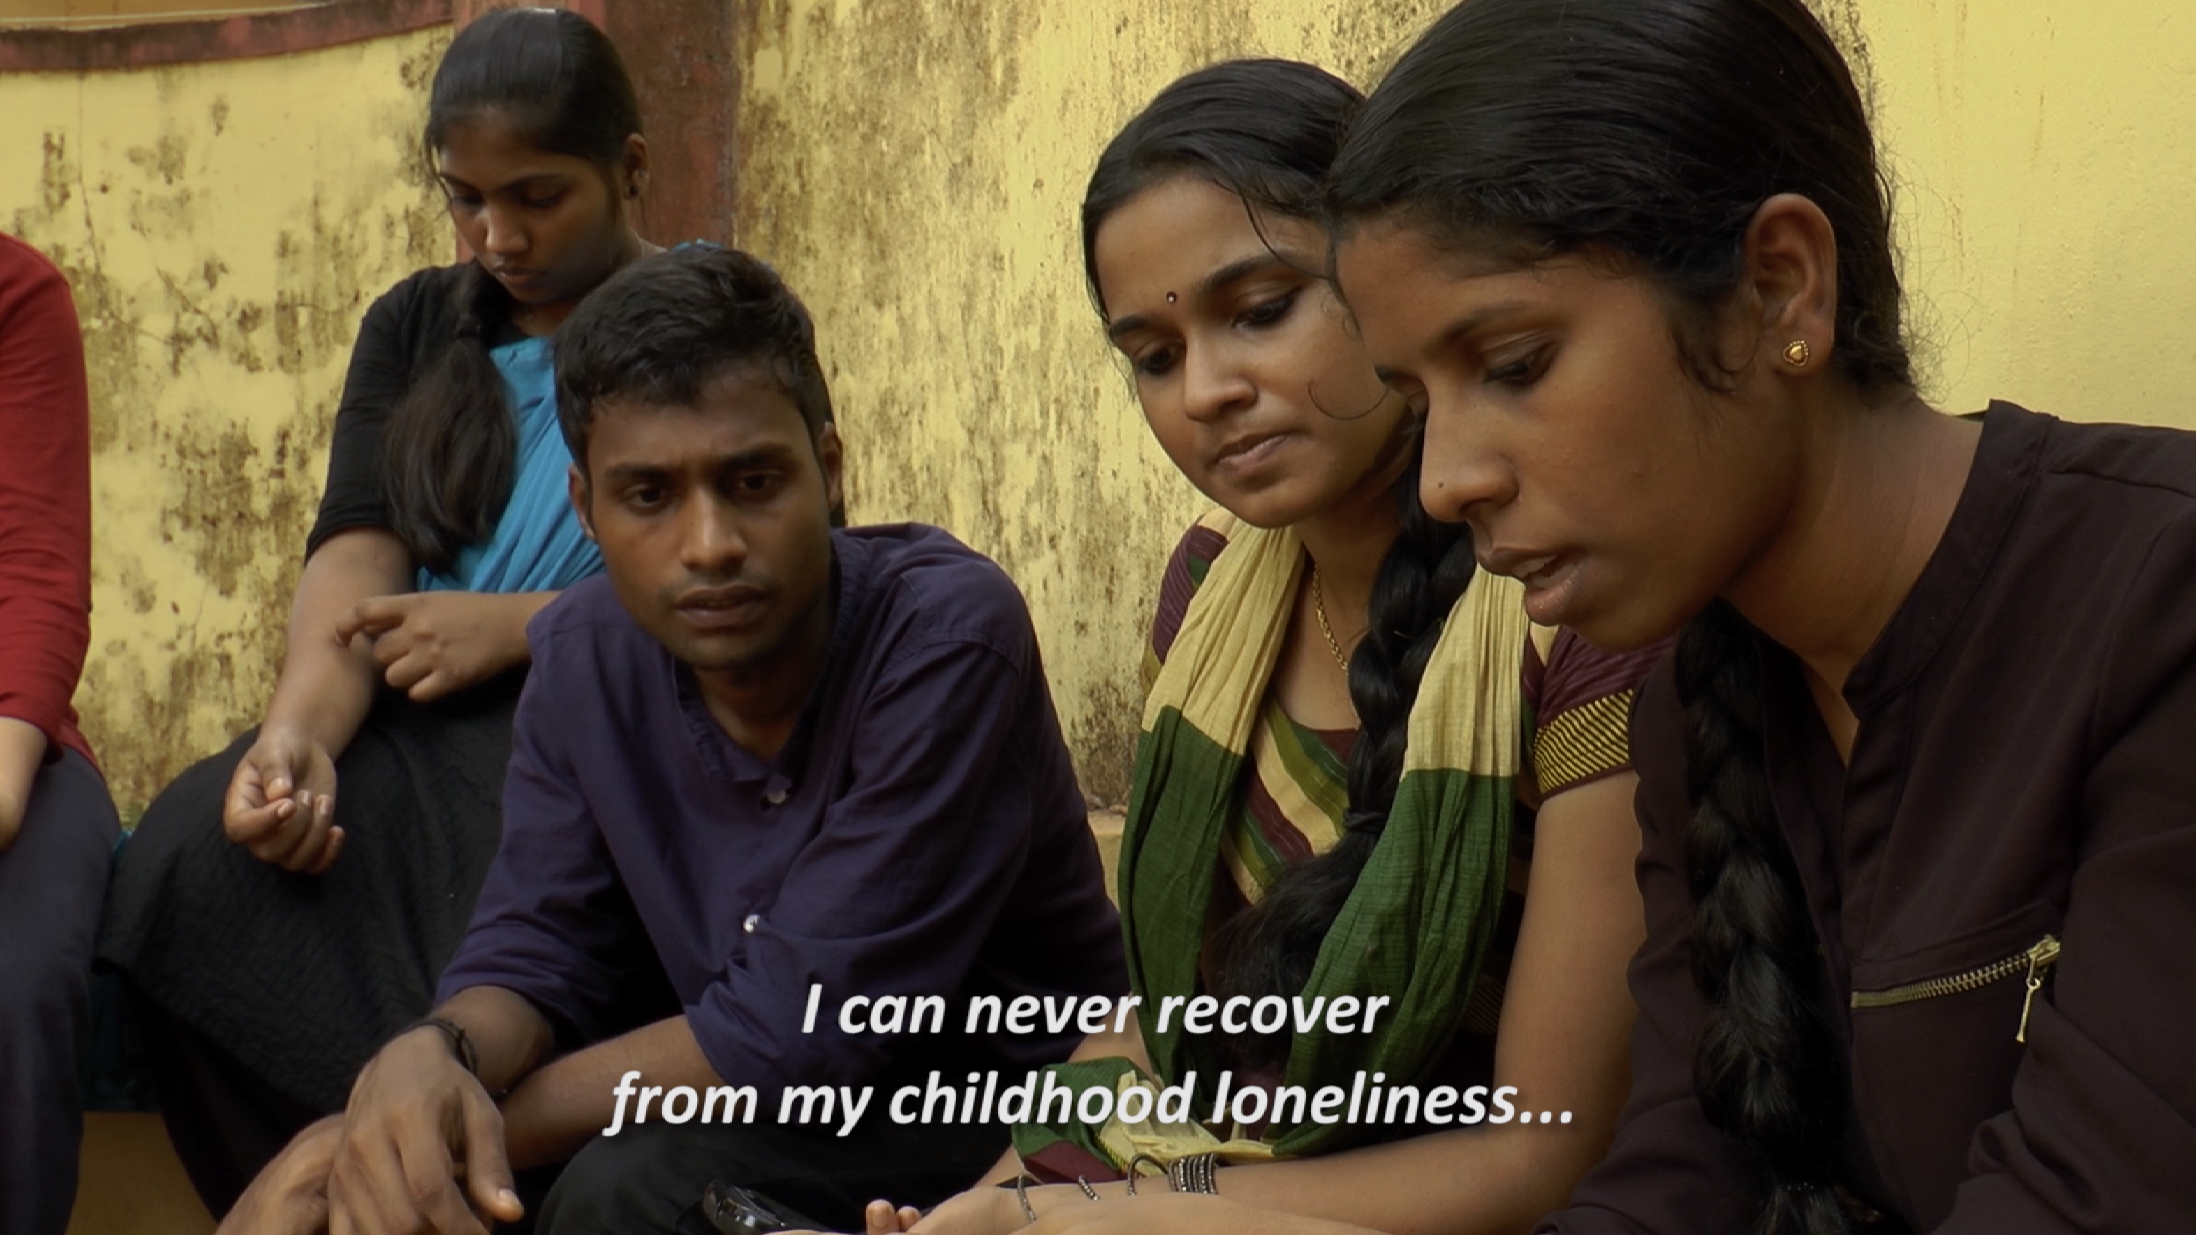 POSTPONED: Recasting Selves: A Screening and Discussion with Filmmaker Lalit Vachani